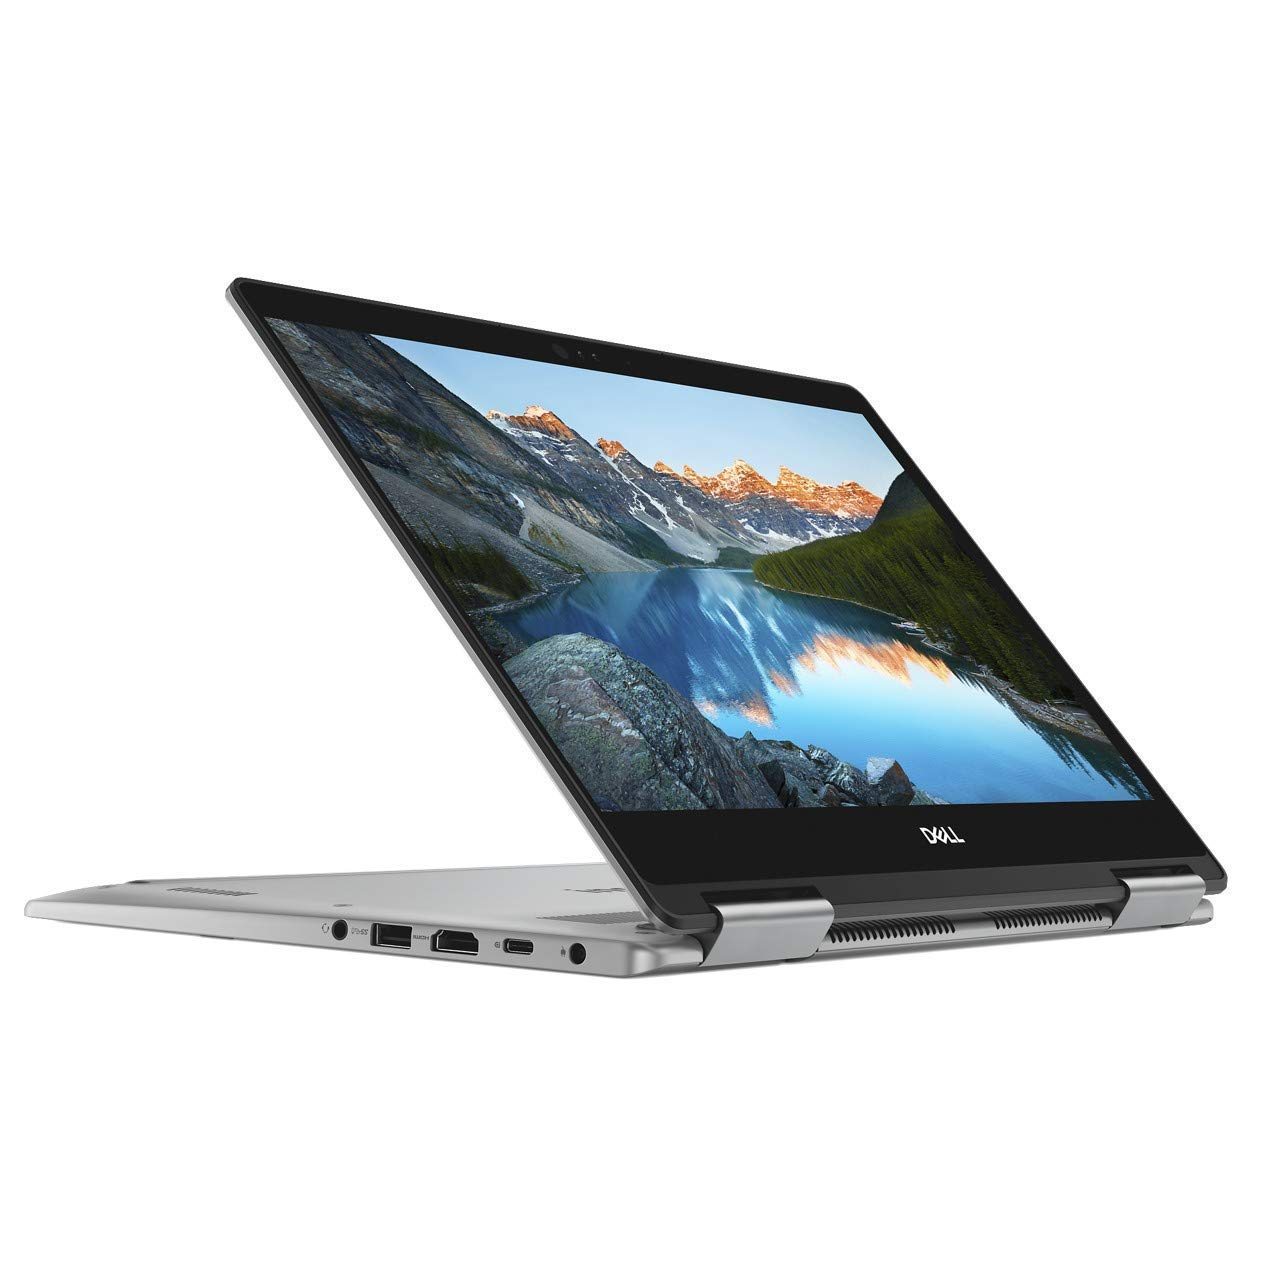 Dell Inspiron 13 7373 13.3-Inch 256GB SSD Core i7 2-in-1 Touch-Screen Laptop (16GB RAM, Intel Core i7-8550U, Windows 10 Home) I7373-7227GRY - Era Gray